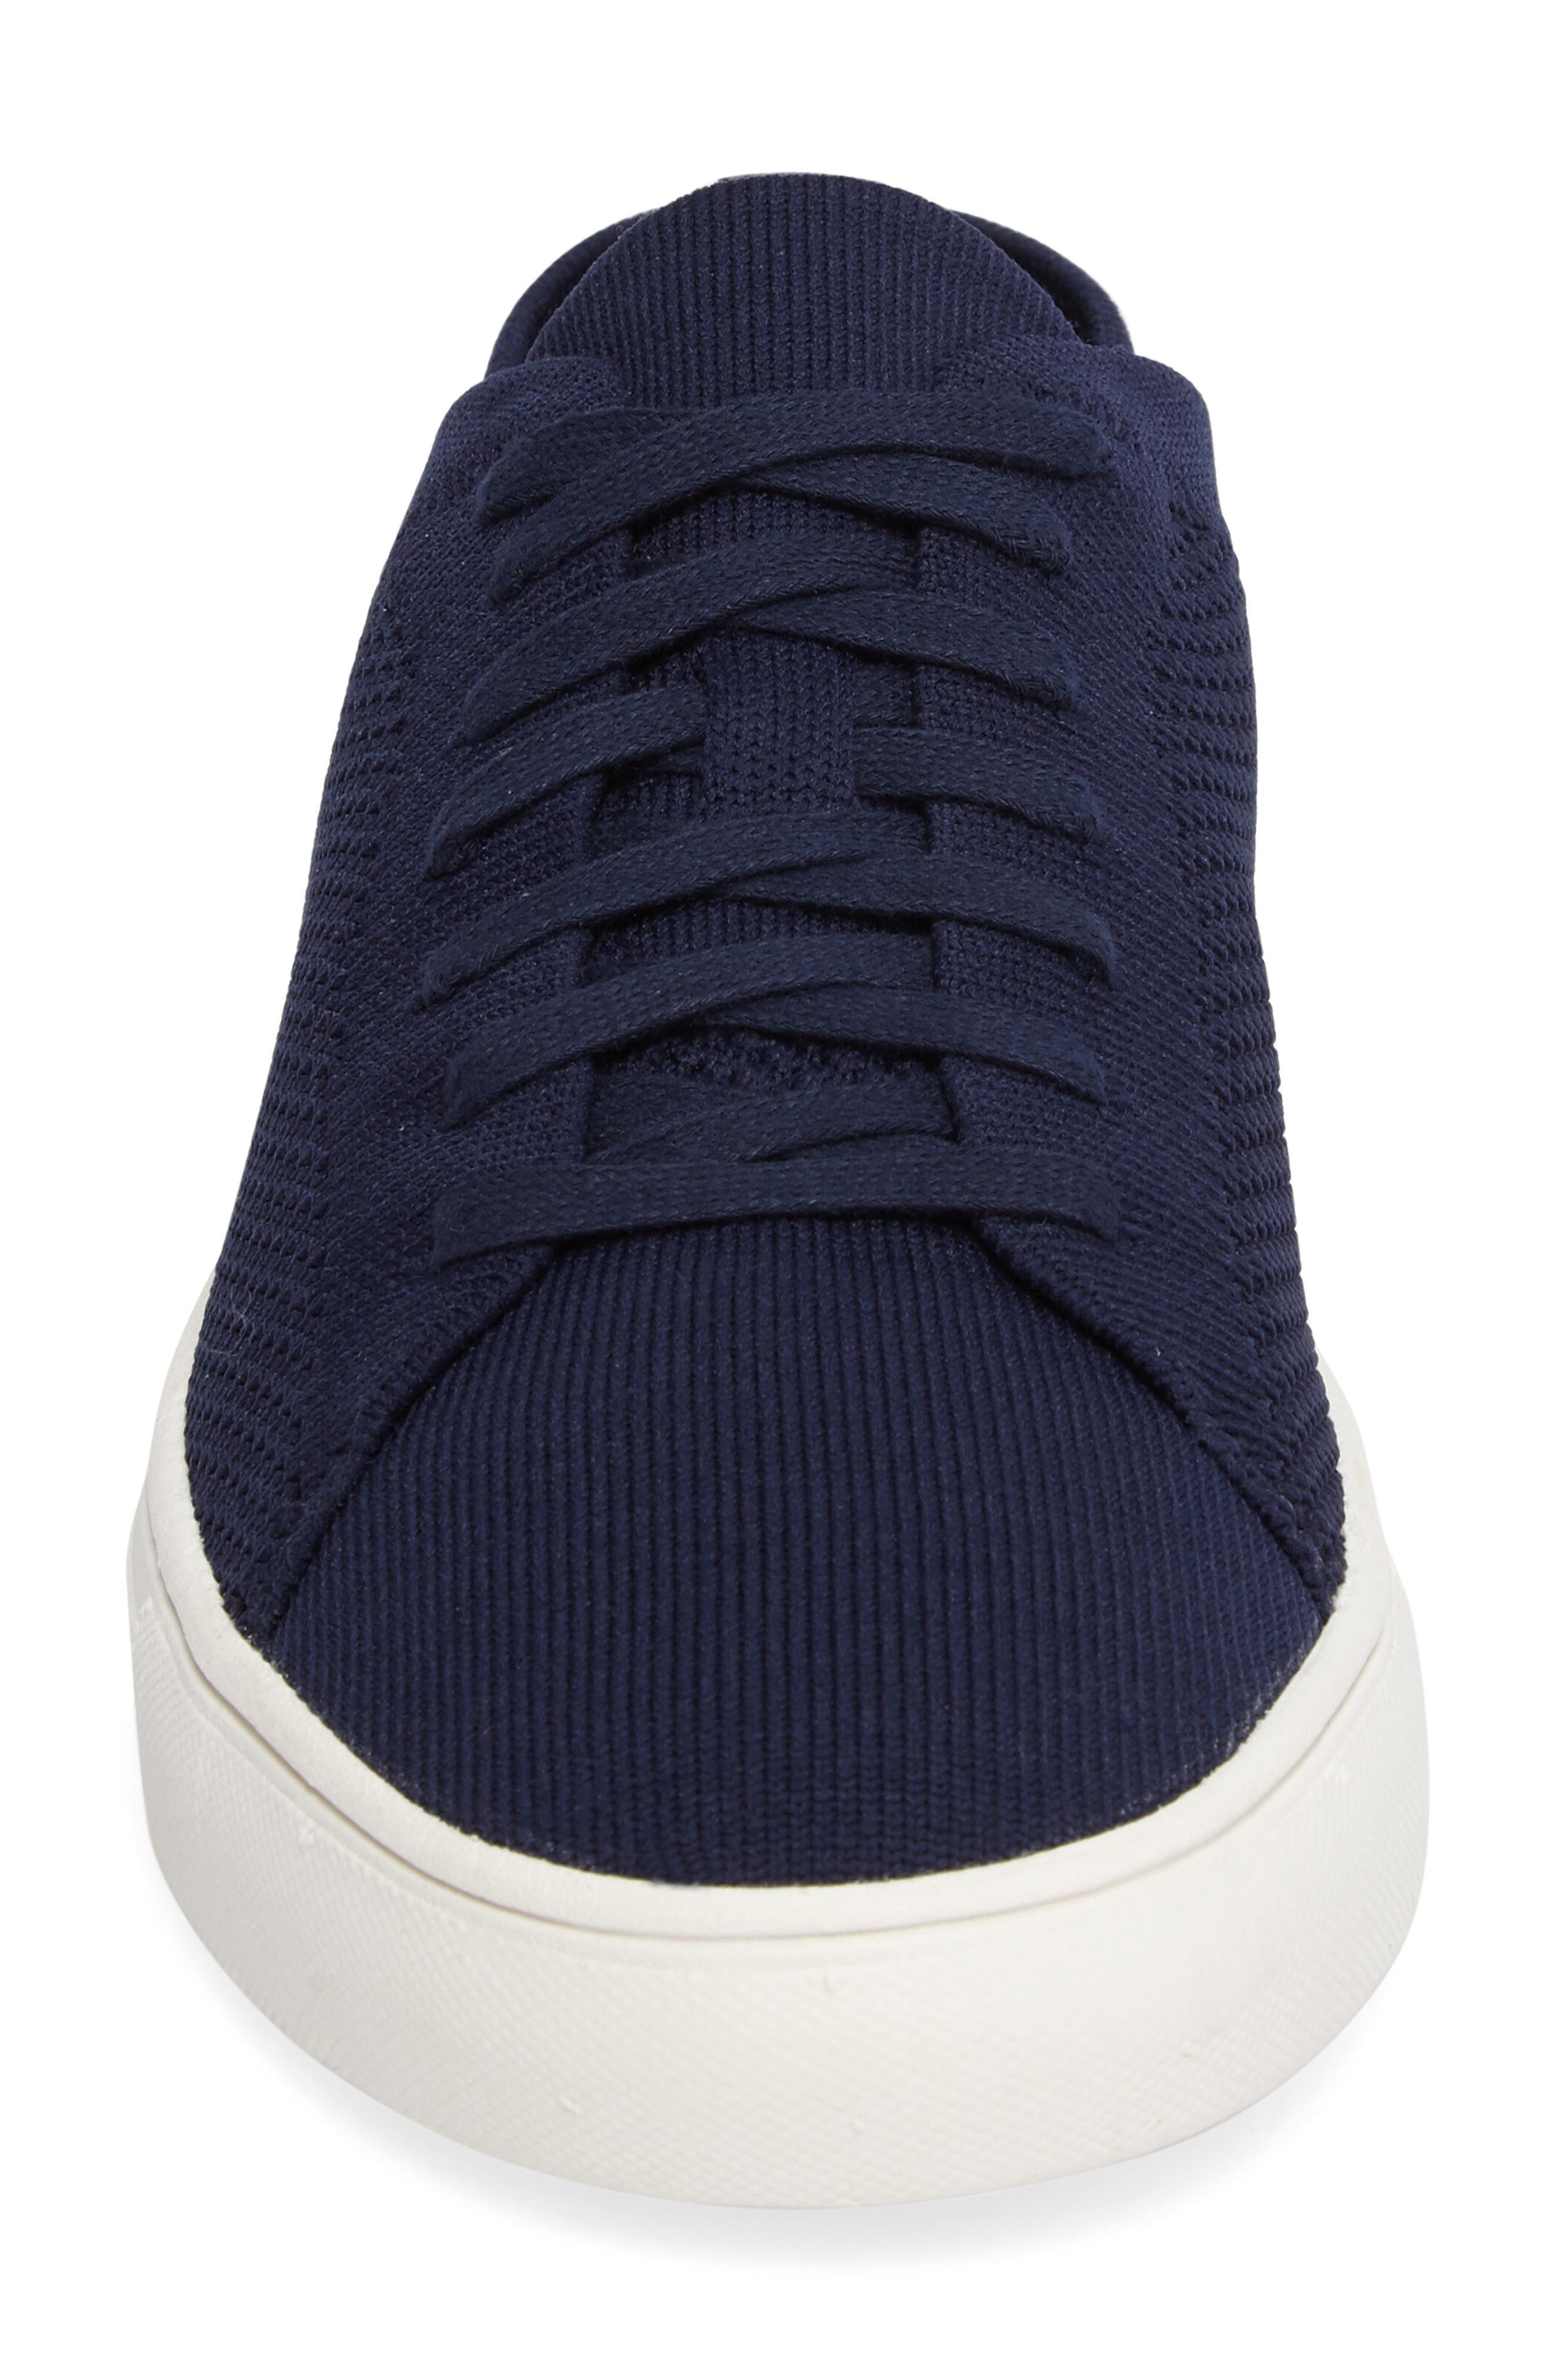 On the Road Woven Sneaker,                             Alternate thumbnail 4, color,                             Navy